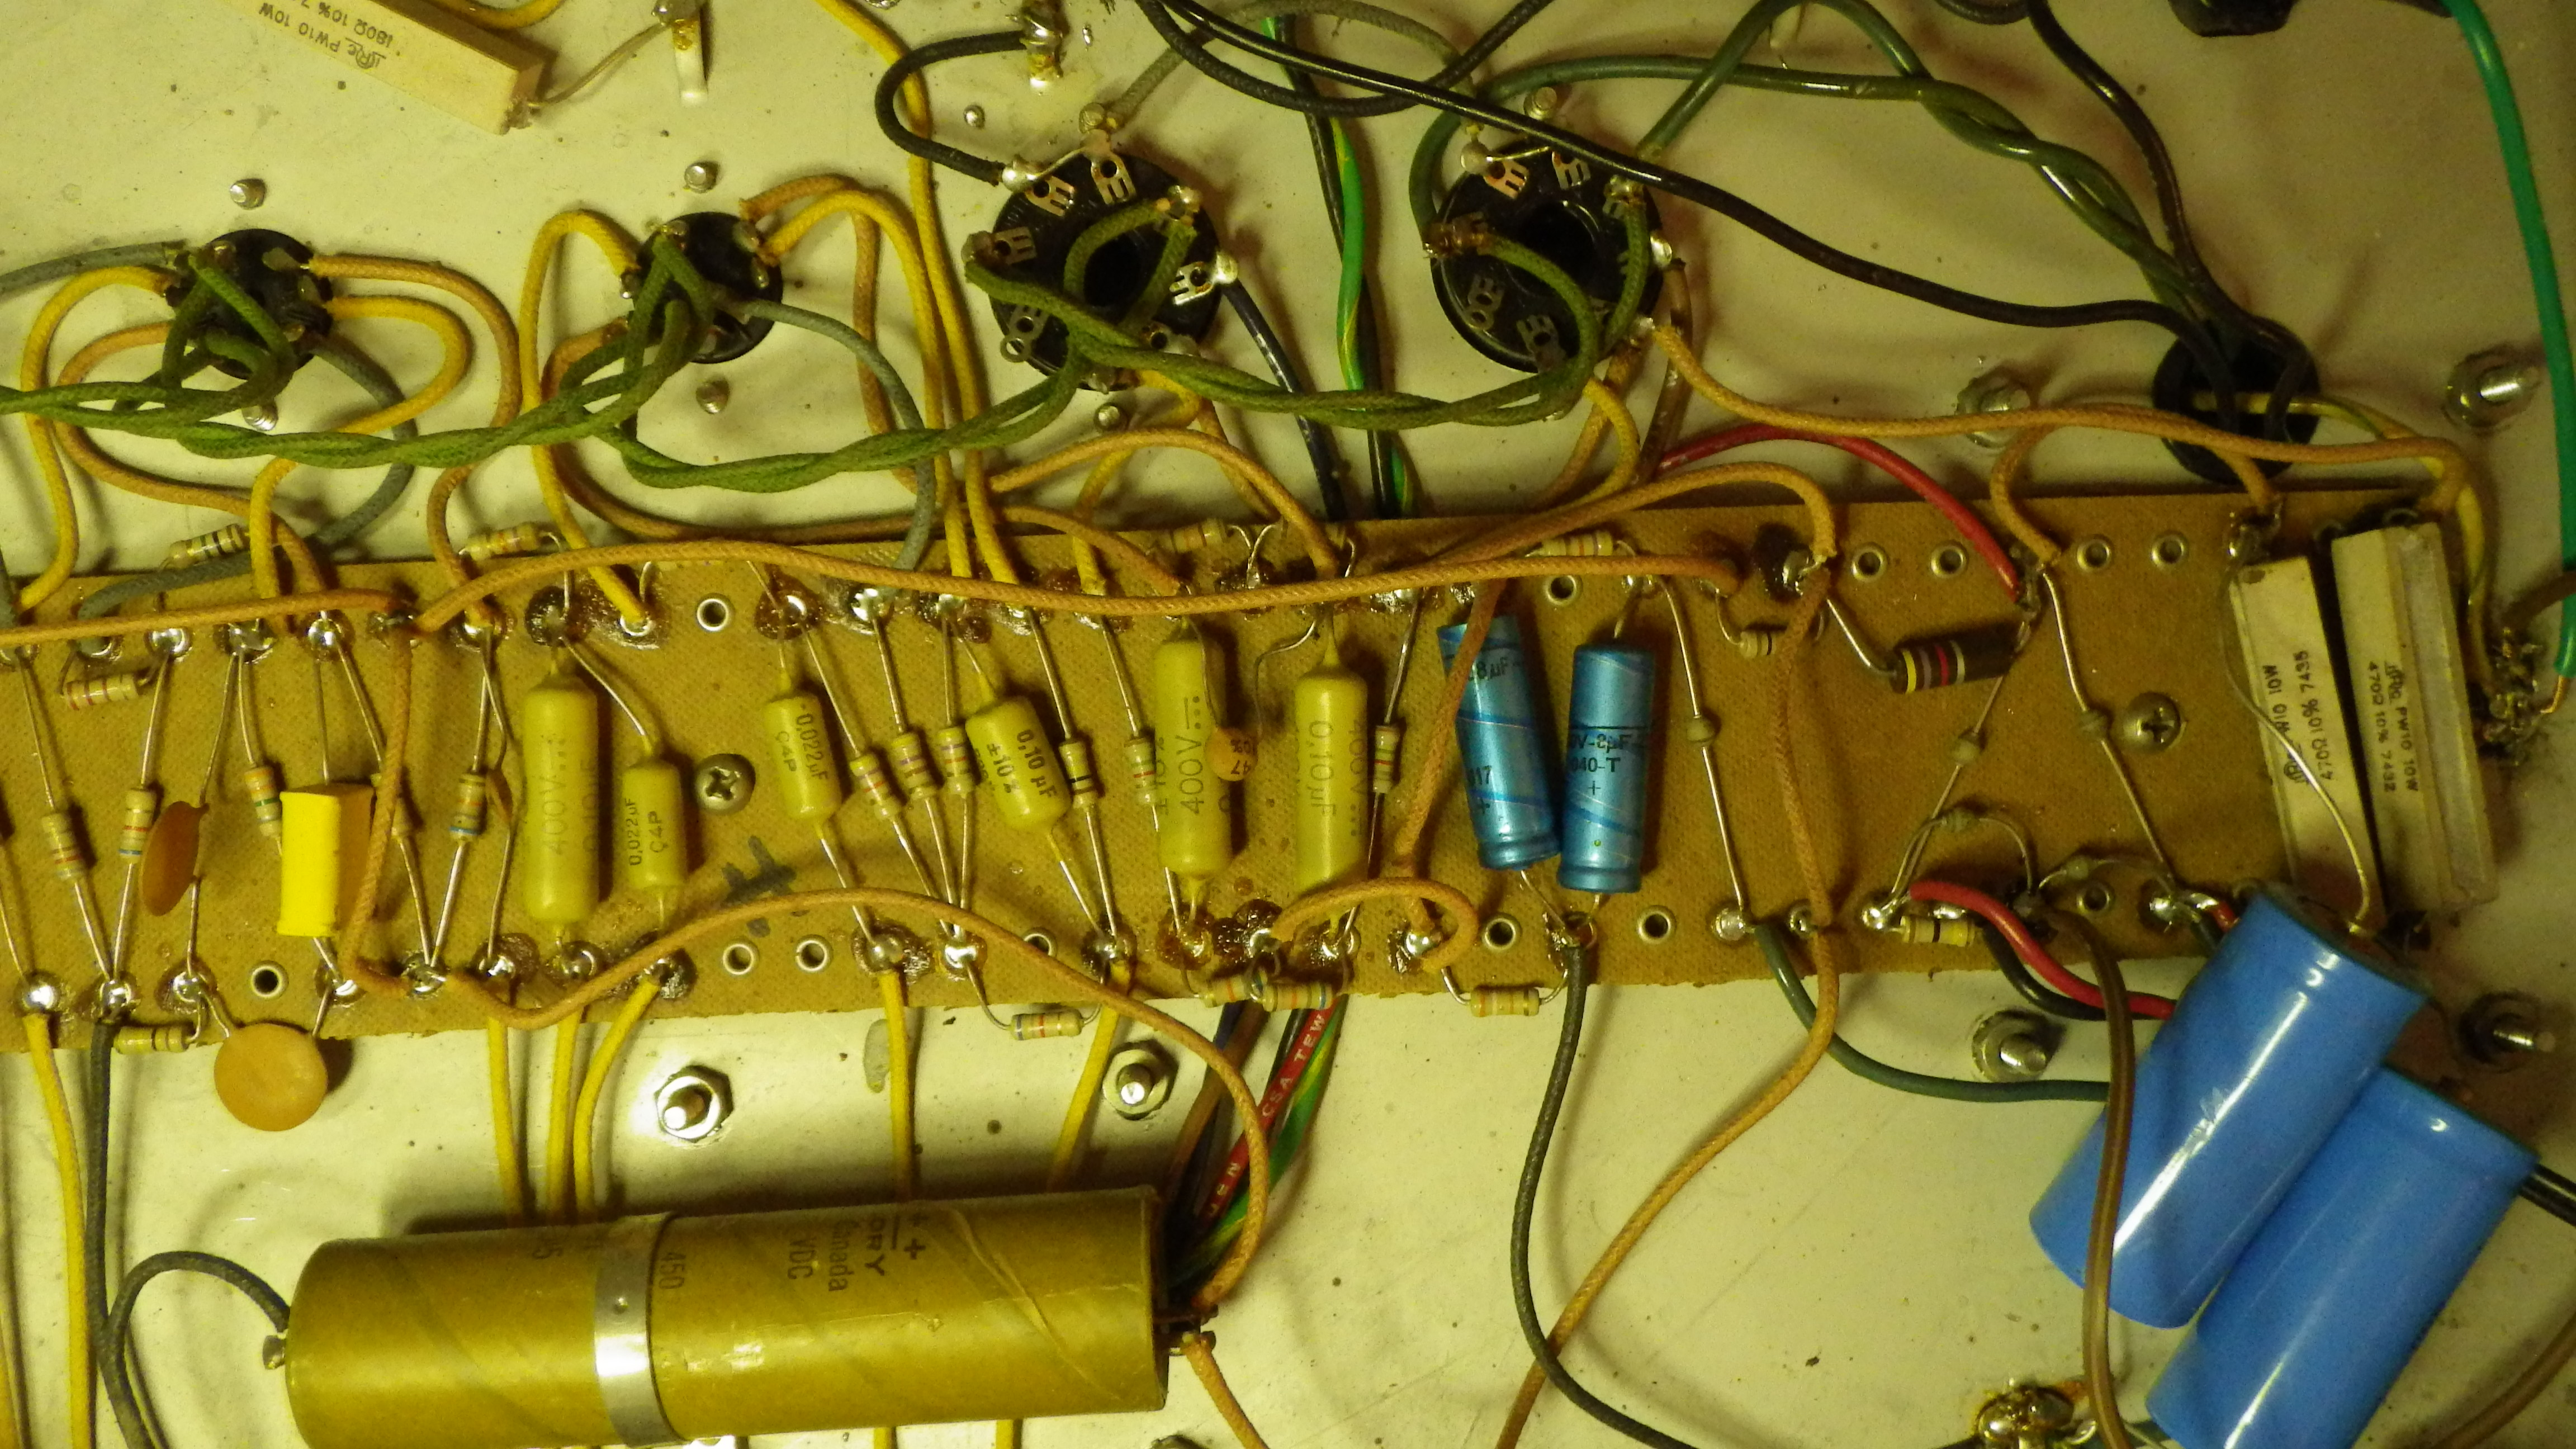 Yba 1 Chronicles Fender Bassman 5f6 Tweed Guitar Effect Schematic Diagram Pretty Reliable Beasts But Like All Electrolytic Caps They Have A Finite Lifetime See Http Nmrmghharvardedu Reese Electrolytics For